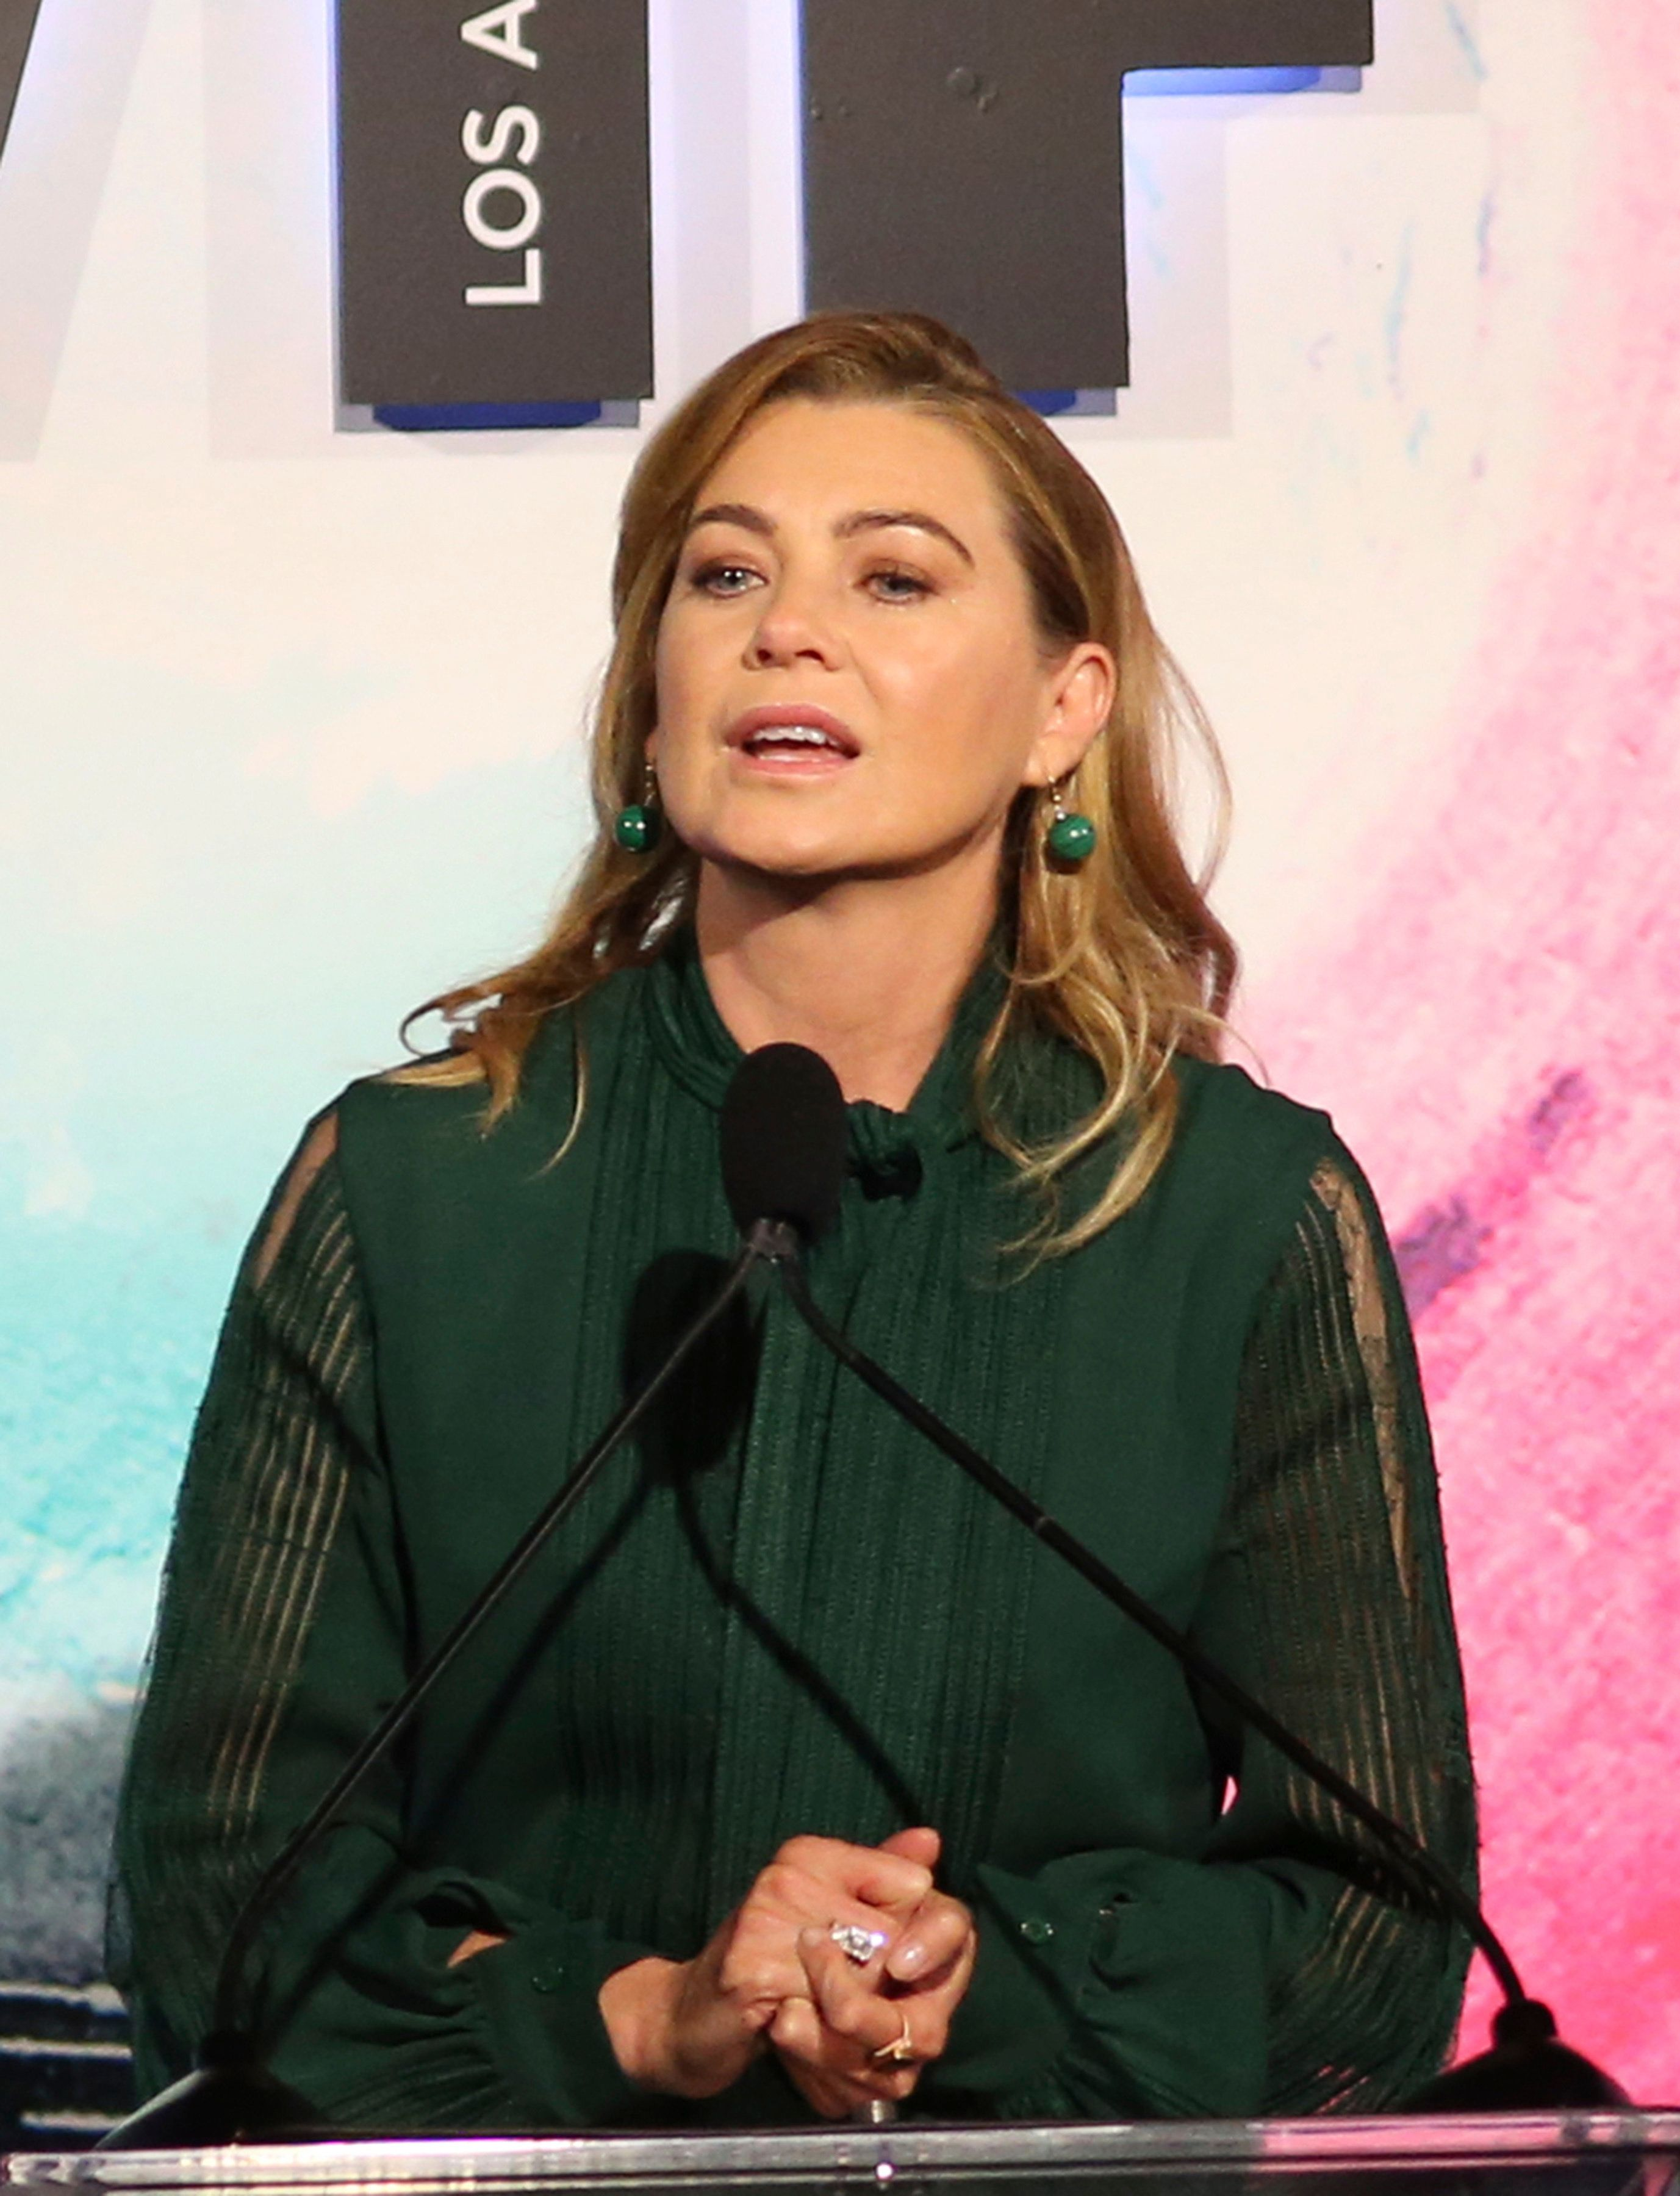 BEVERLY HILLS, CA - JUNE 13: Ellen Pompeo, at the Women In Film 2018 Crystal + Lucy Awards_Show at The Beverly Hilton Hotel in Beverly Hills, California on June 13, 2018. Credit: Faye Sadou/MediaPunch /IPX